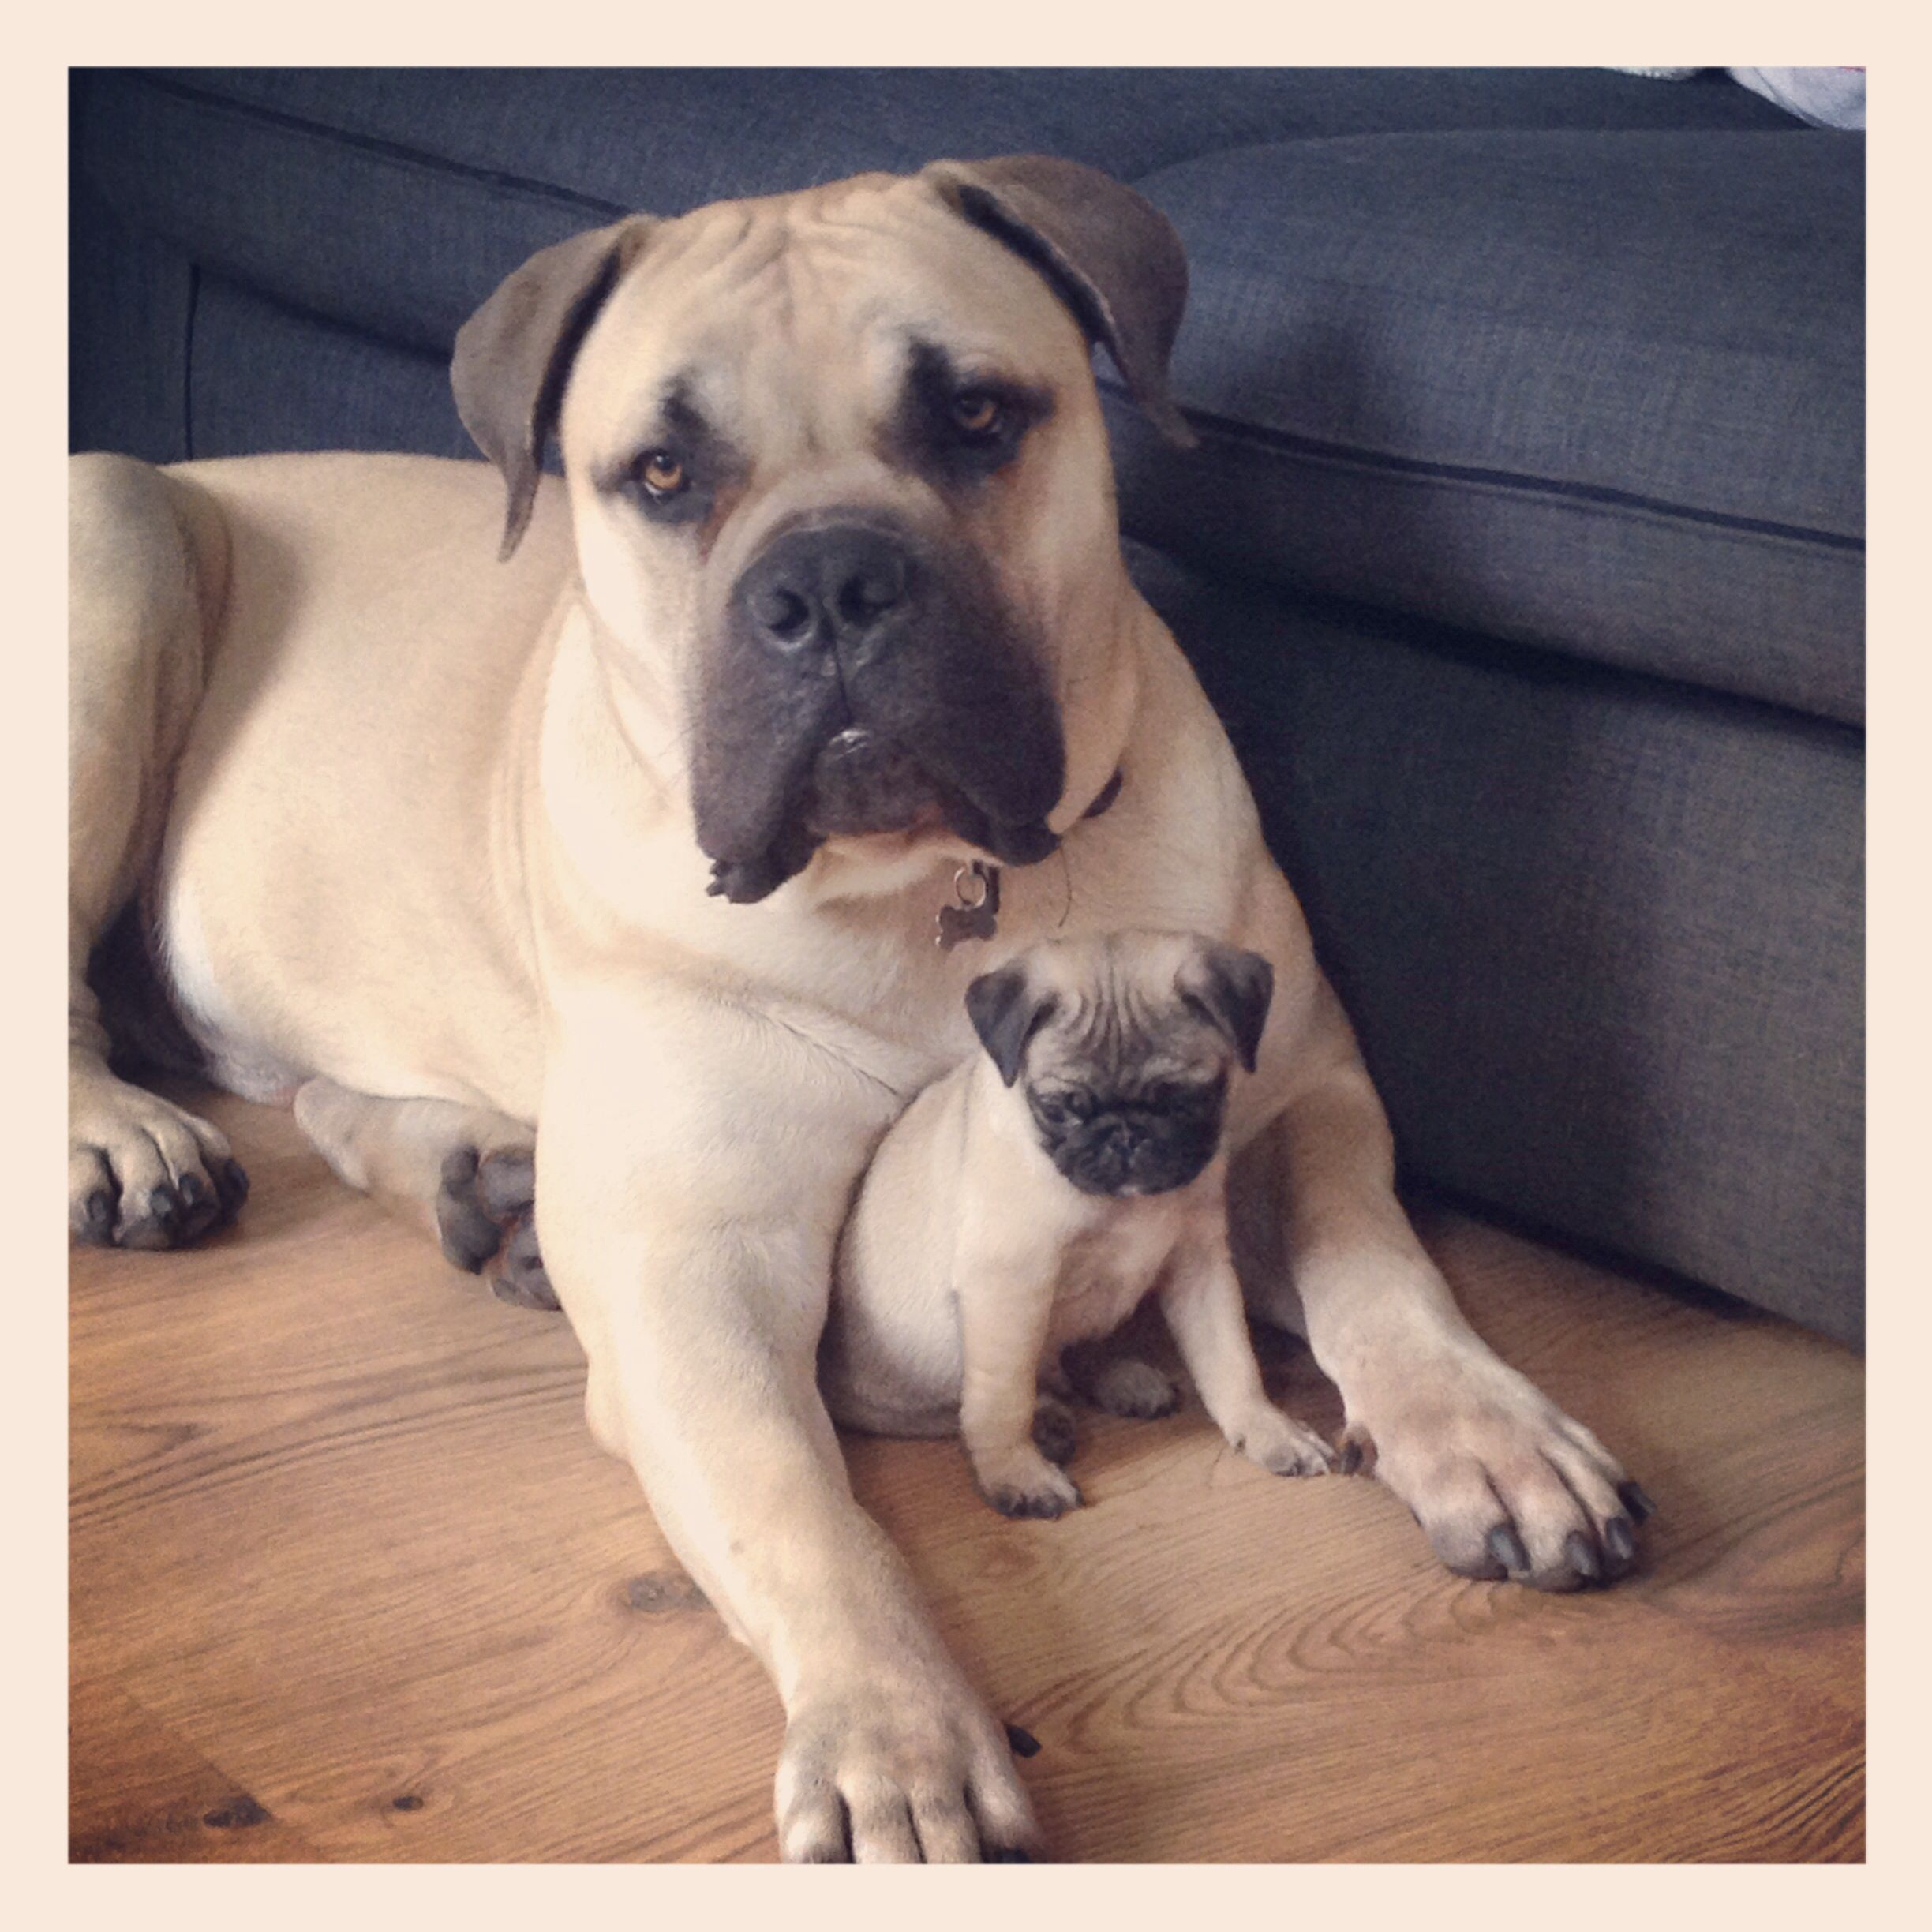 2 Month Old Pug And 18 Month Old Boerboel Just Woke From Having A